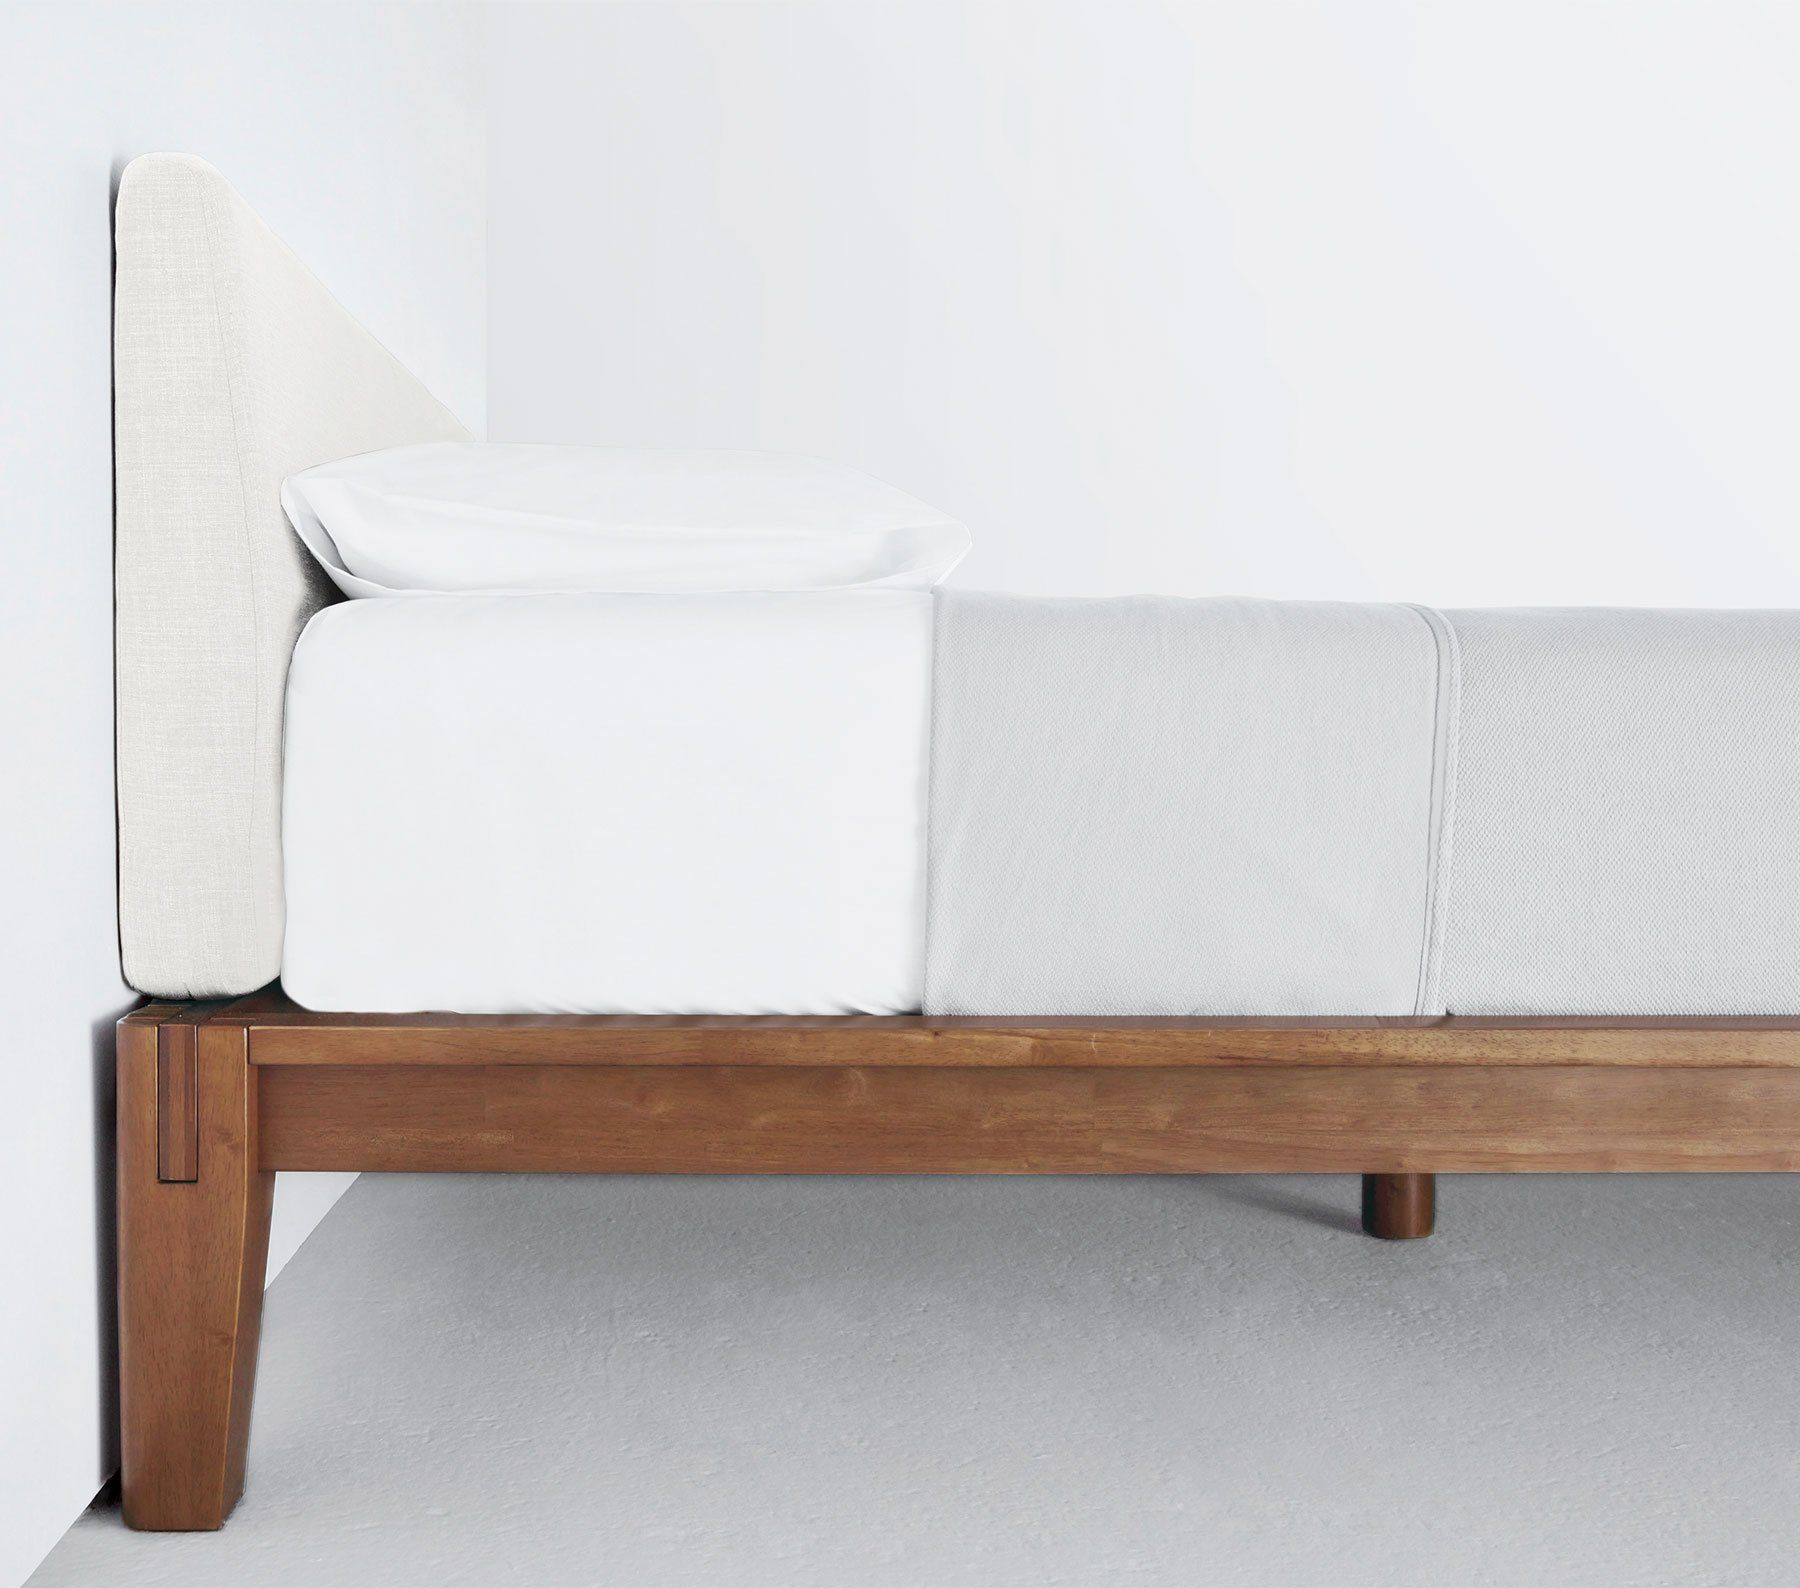 The Bed in 2020 Bed frame, Bed frame design, Japanese